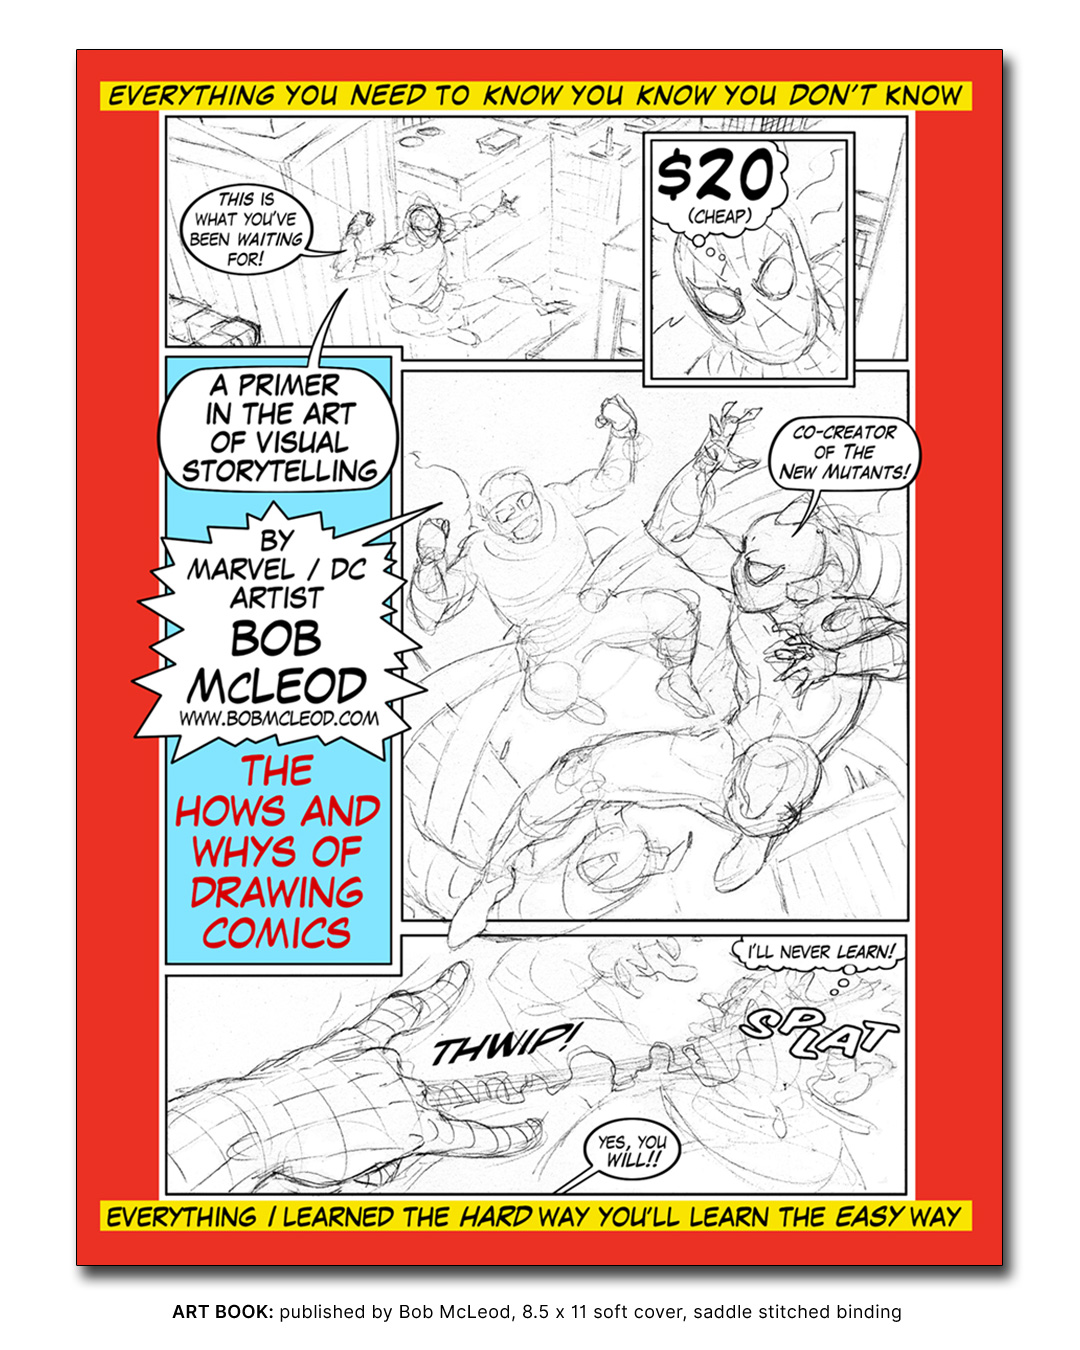 Art Book - THE HOWS AND WHYS OF DRAWING COMICS